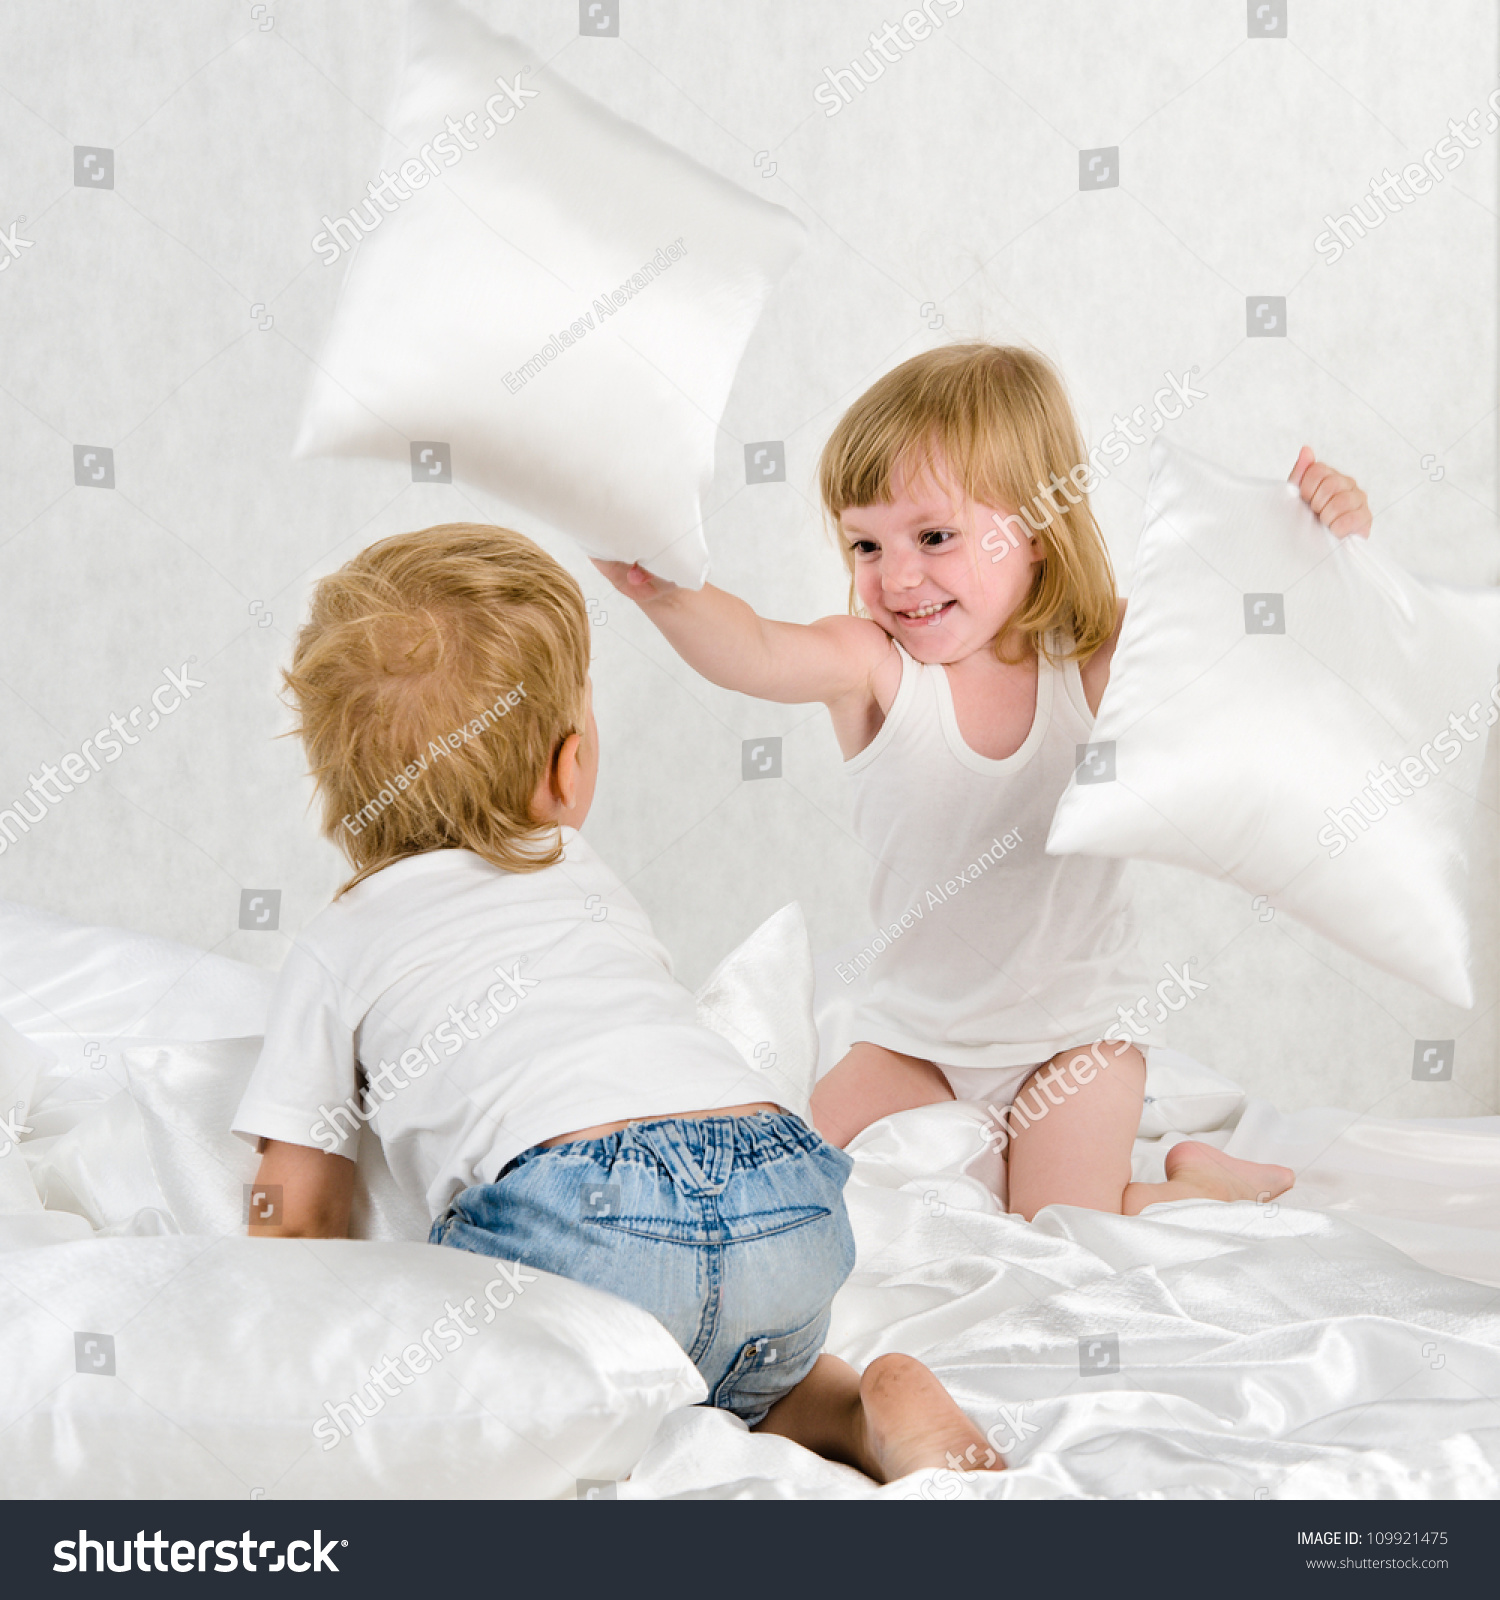 Portrait Kids Fighting With Pillows In Bed - Indoor Stock ...